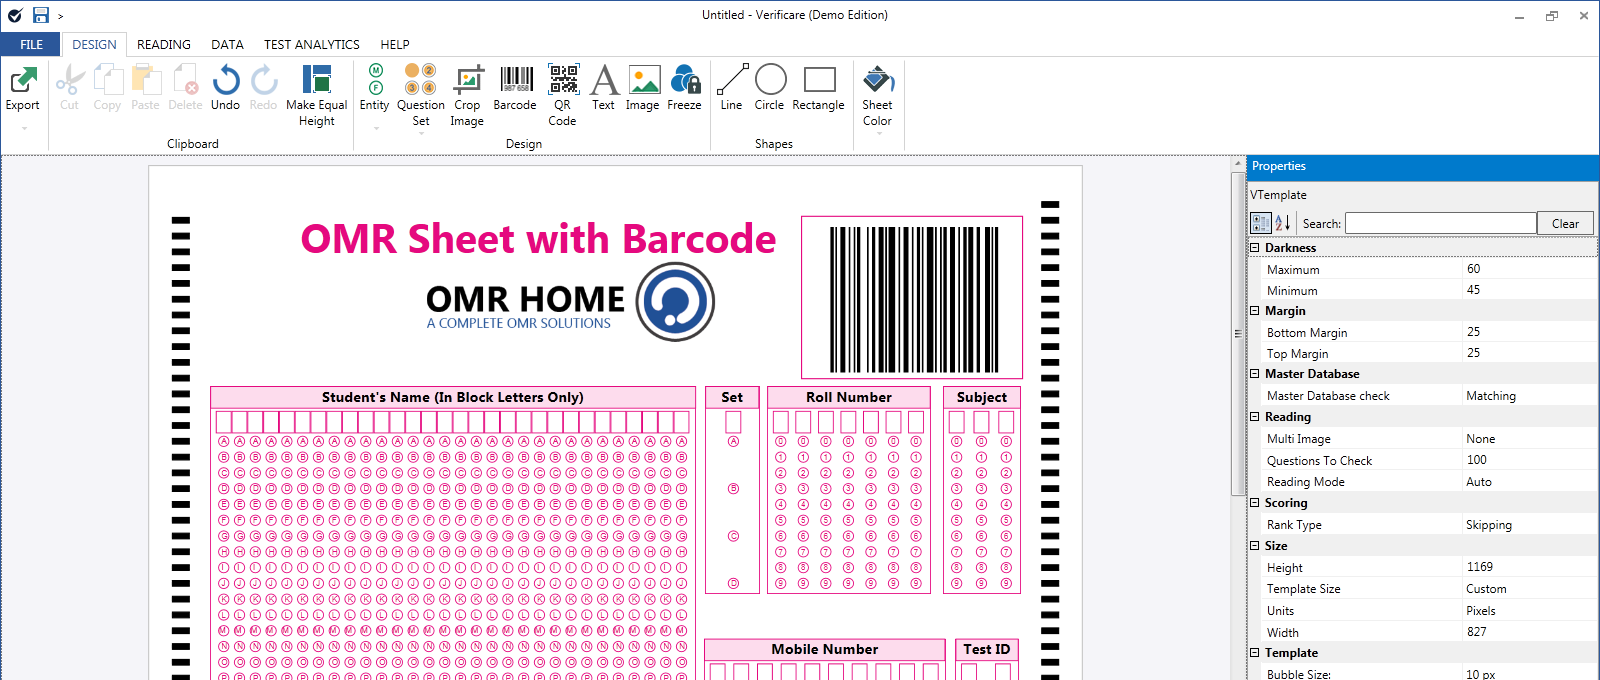 Omr-sheet-with-barcode